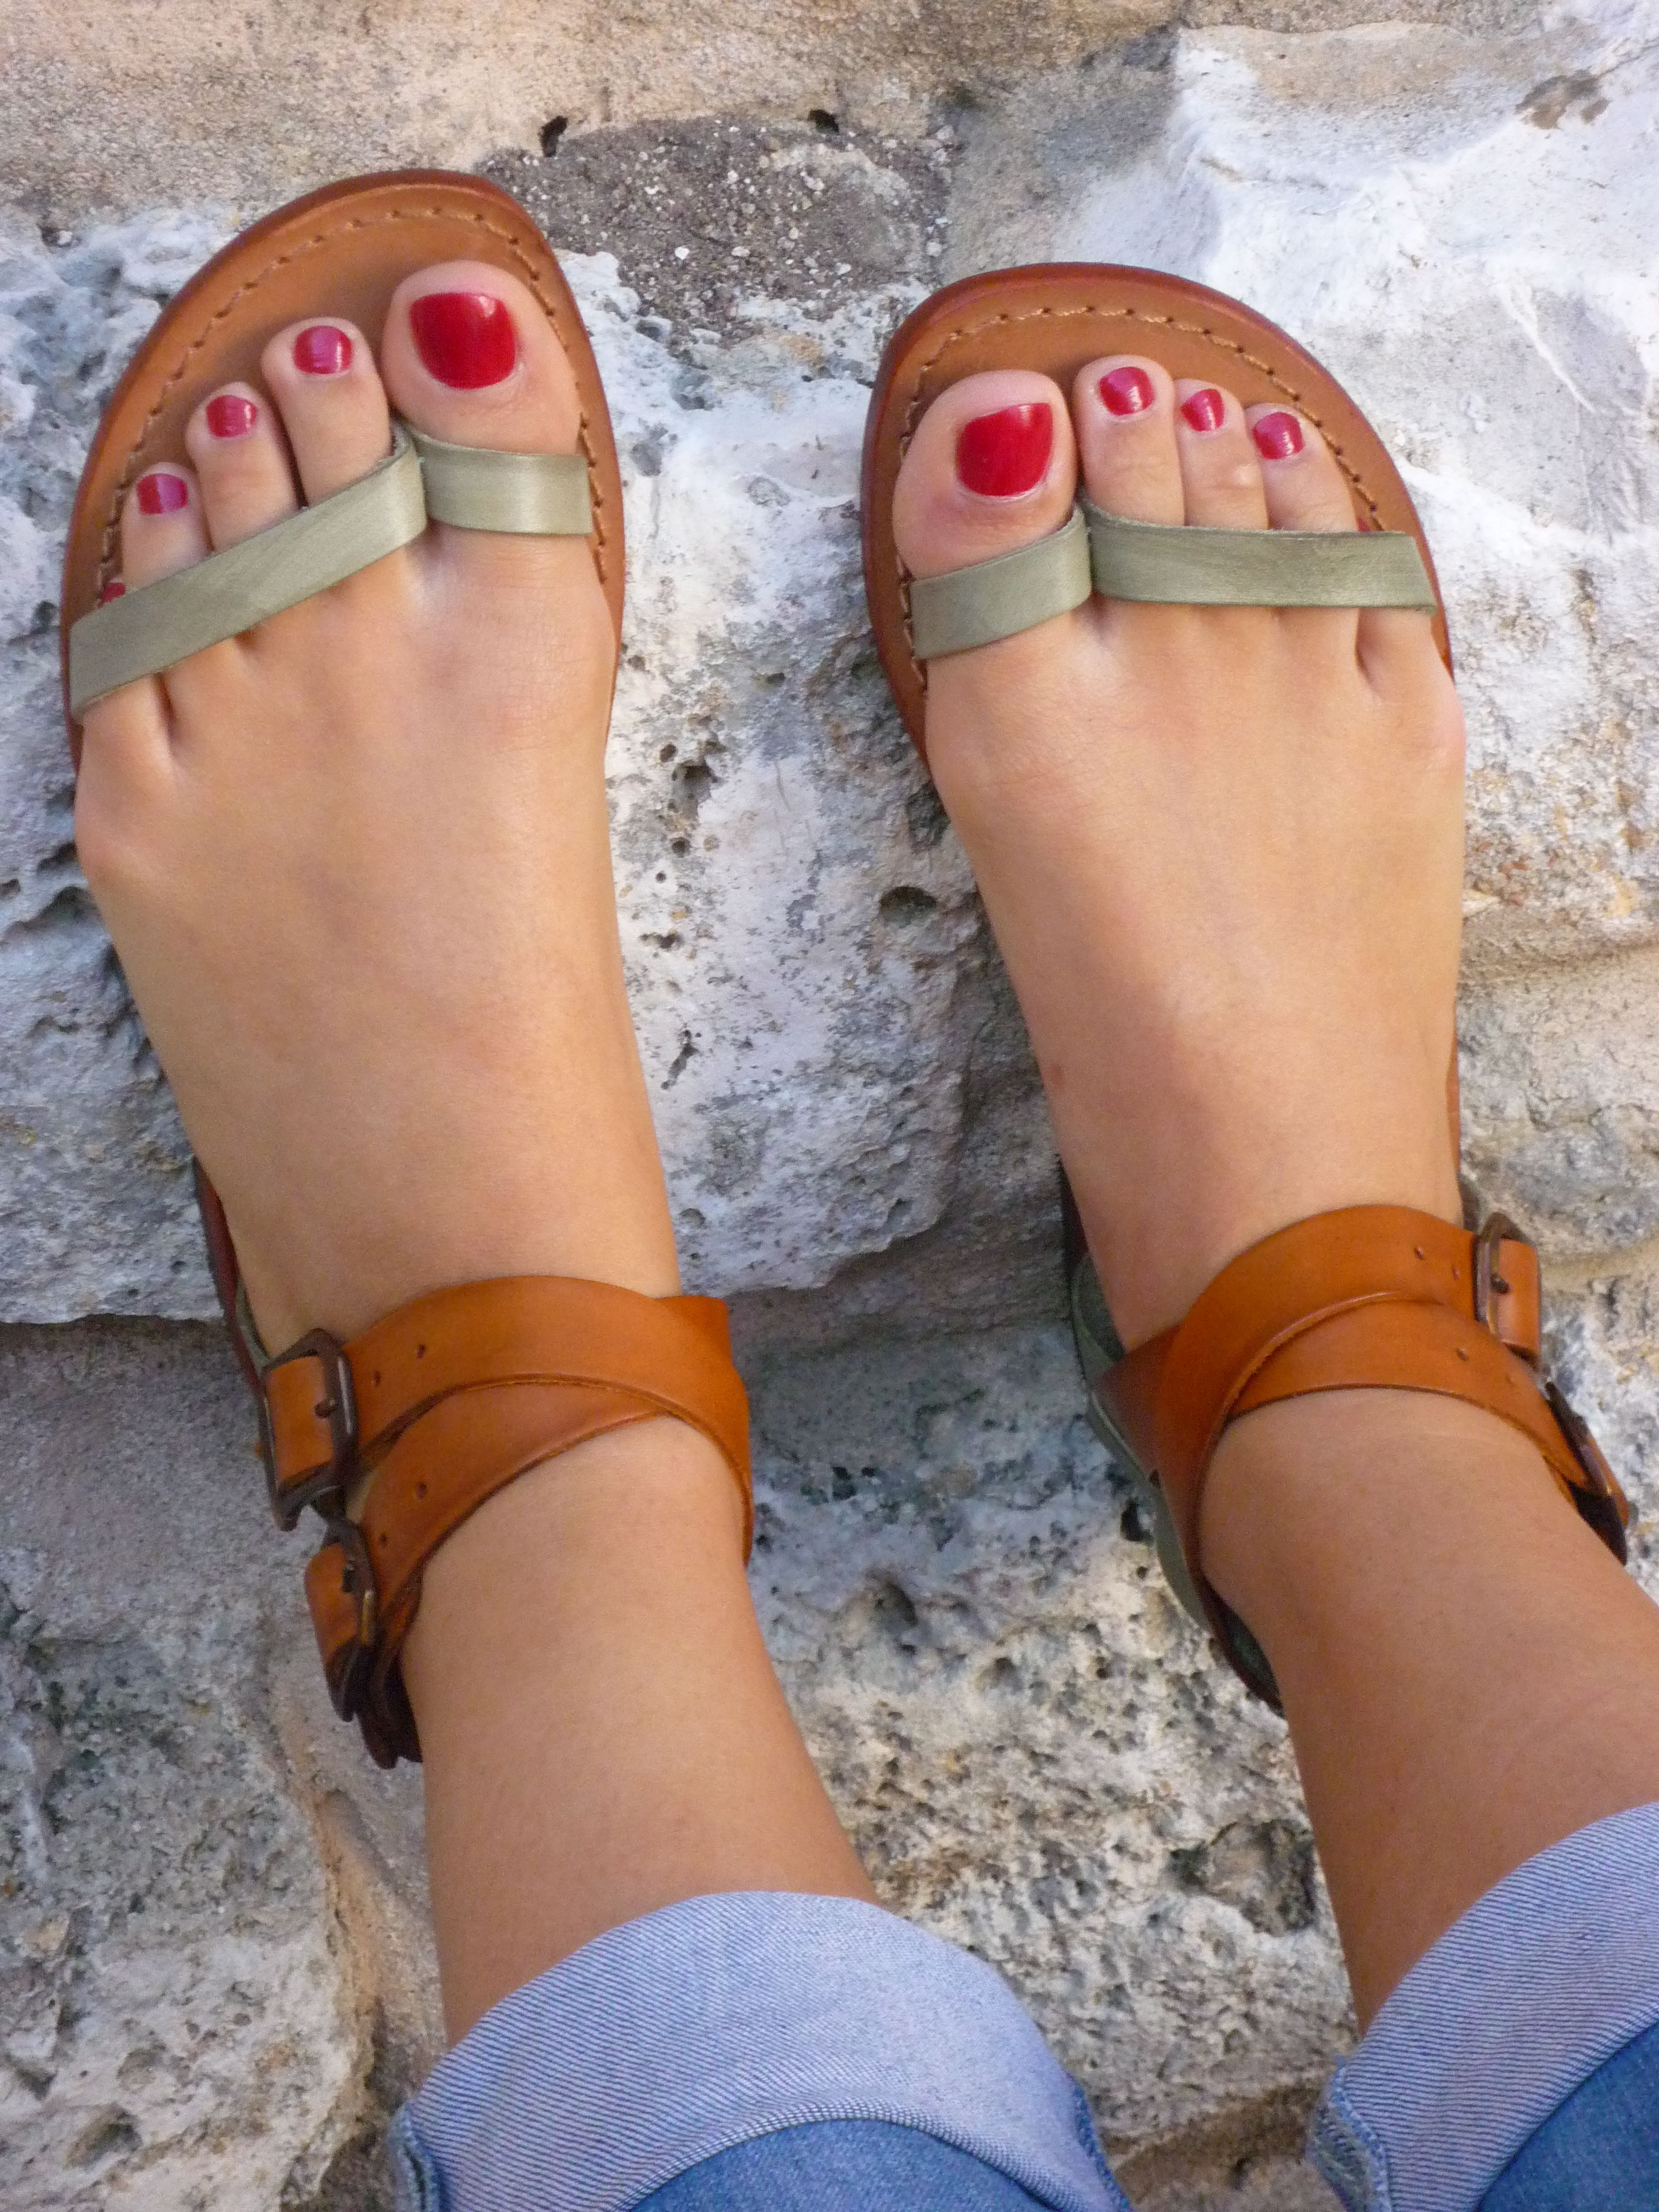 Shoes - Sandals - leather - handmade - Italian - Summer - Women's - www.sandalishop.it  :-)